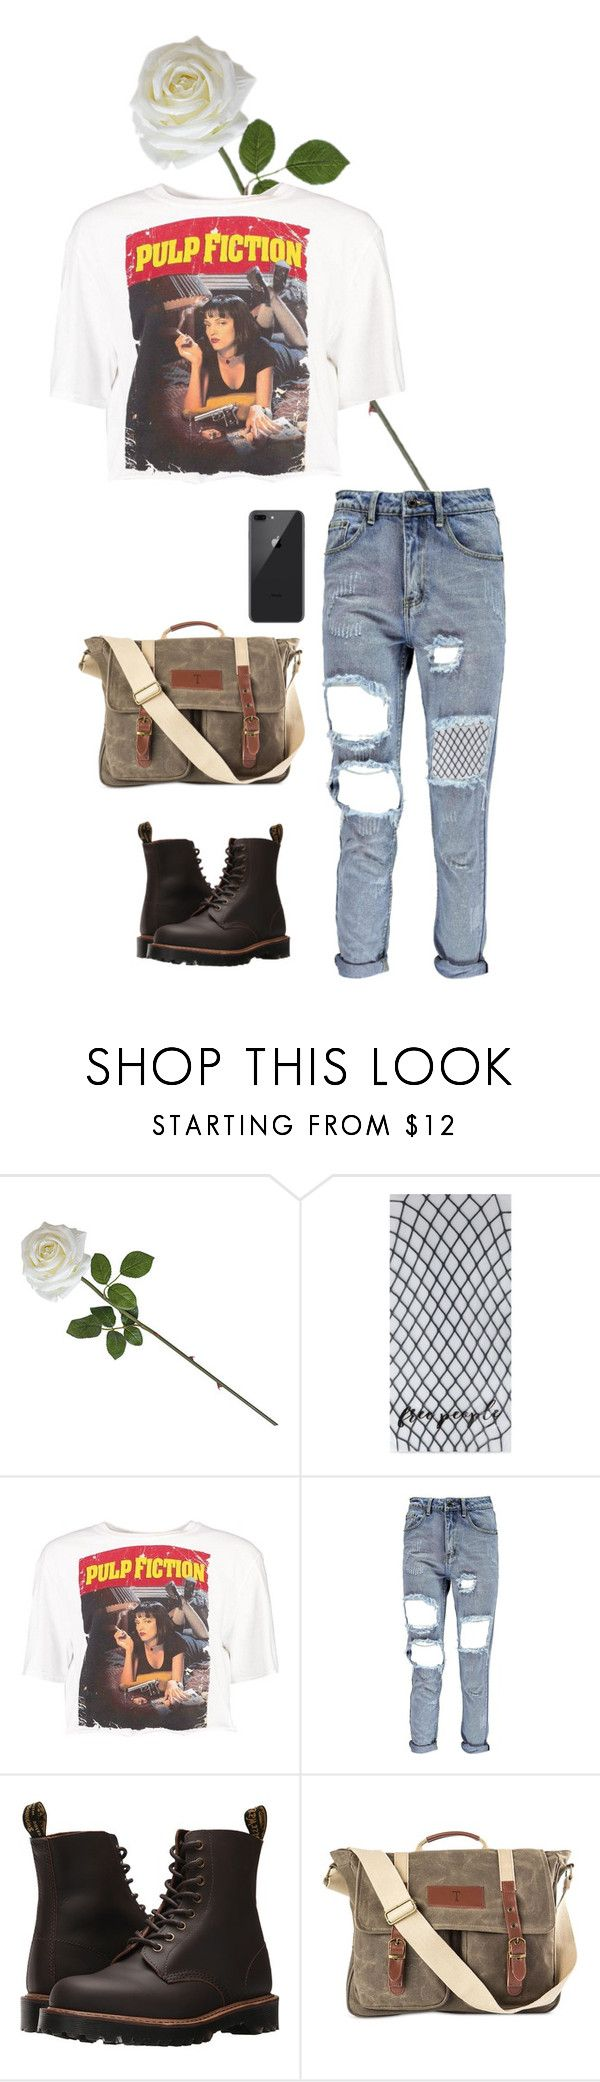 """Pulp Fiction"" by burnttoasts on Polyvore featuring Free People, Boohoo, Dr. Martens and Cathy's Concepts"